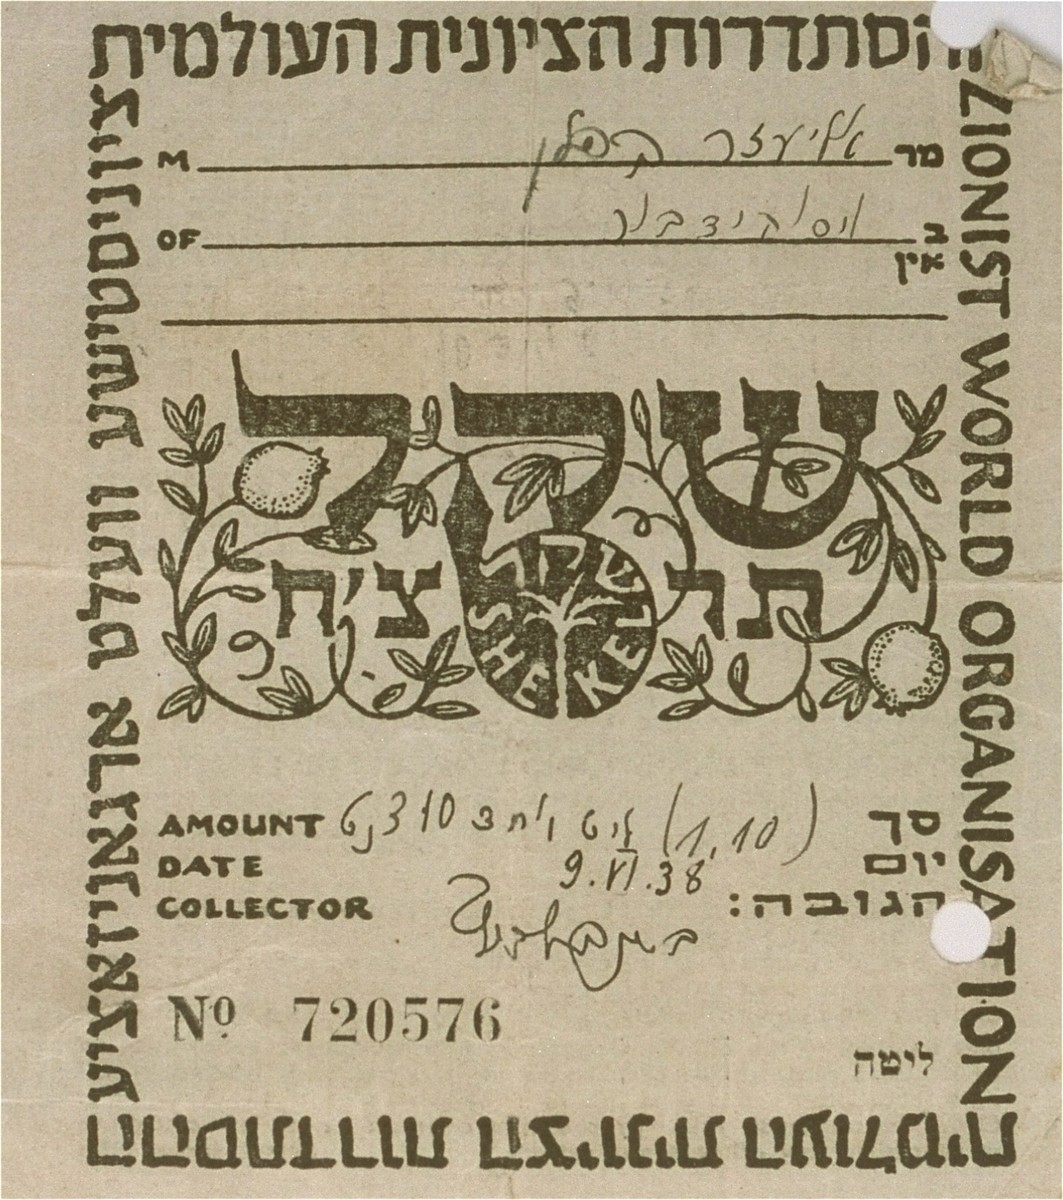 Certificate of payment of dues to the World Zionist Organization by Eliezer Kaplan of Visokidbor, Lithuania.